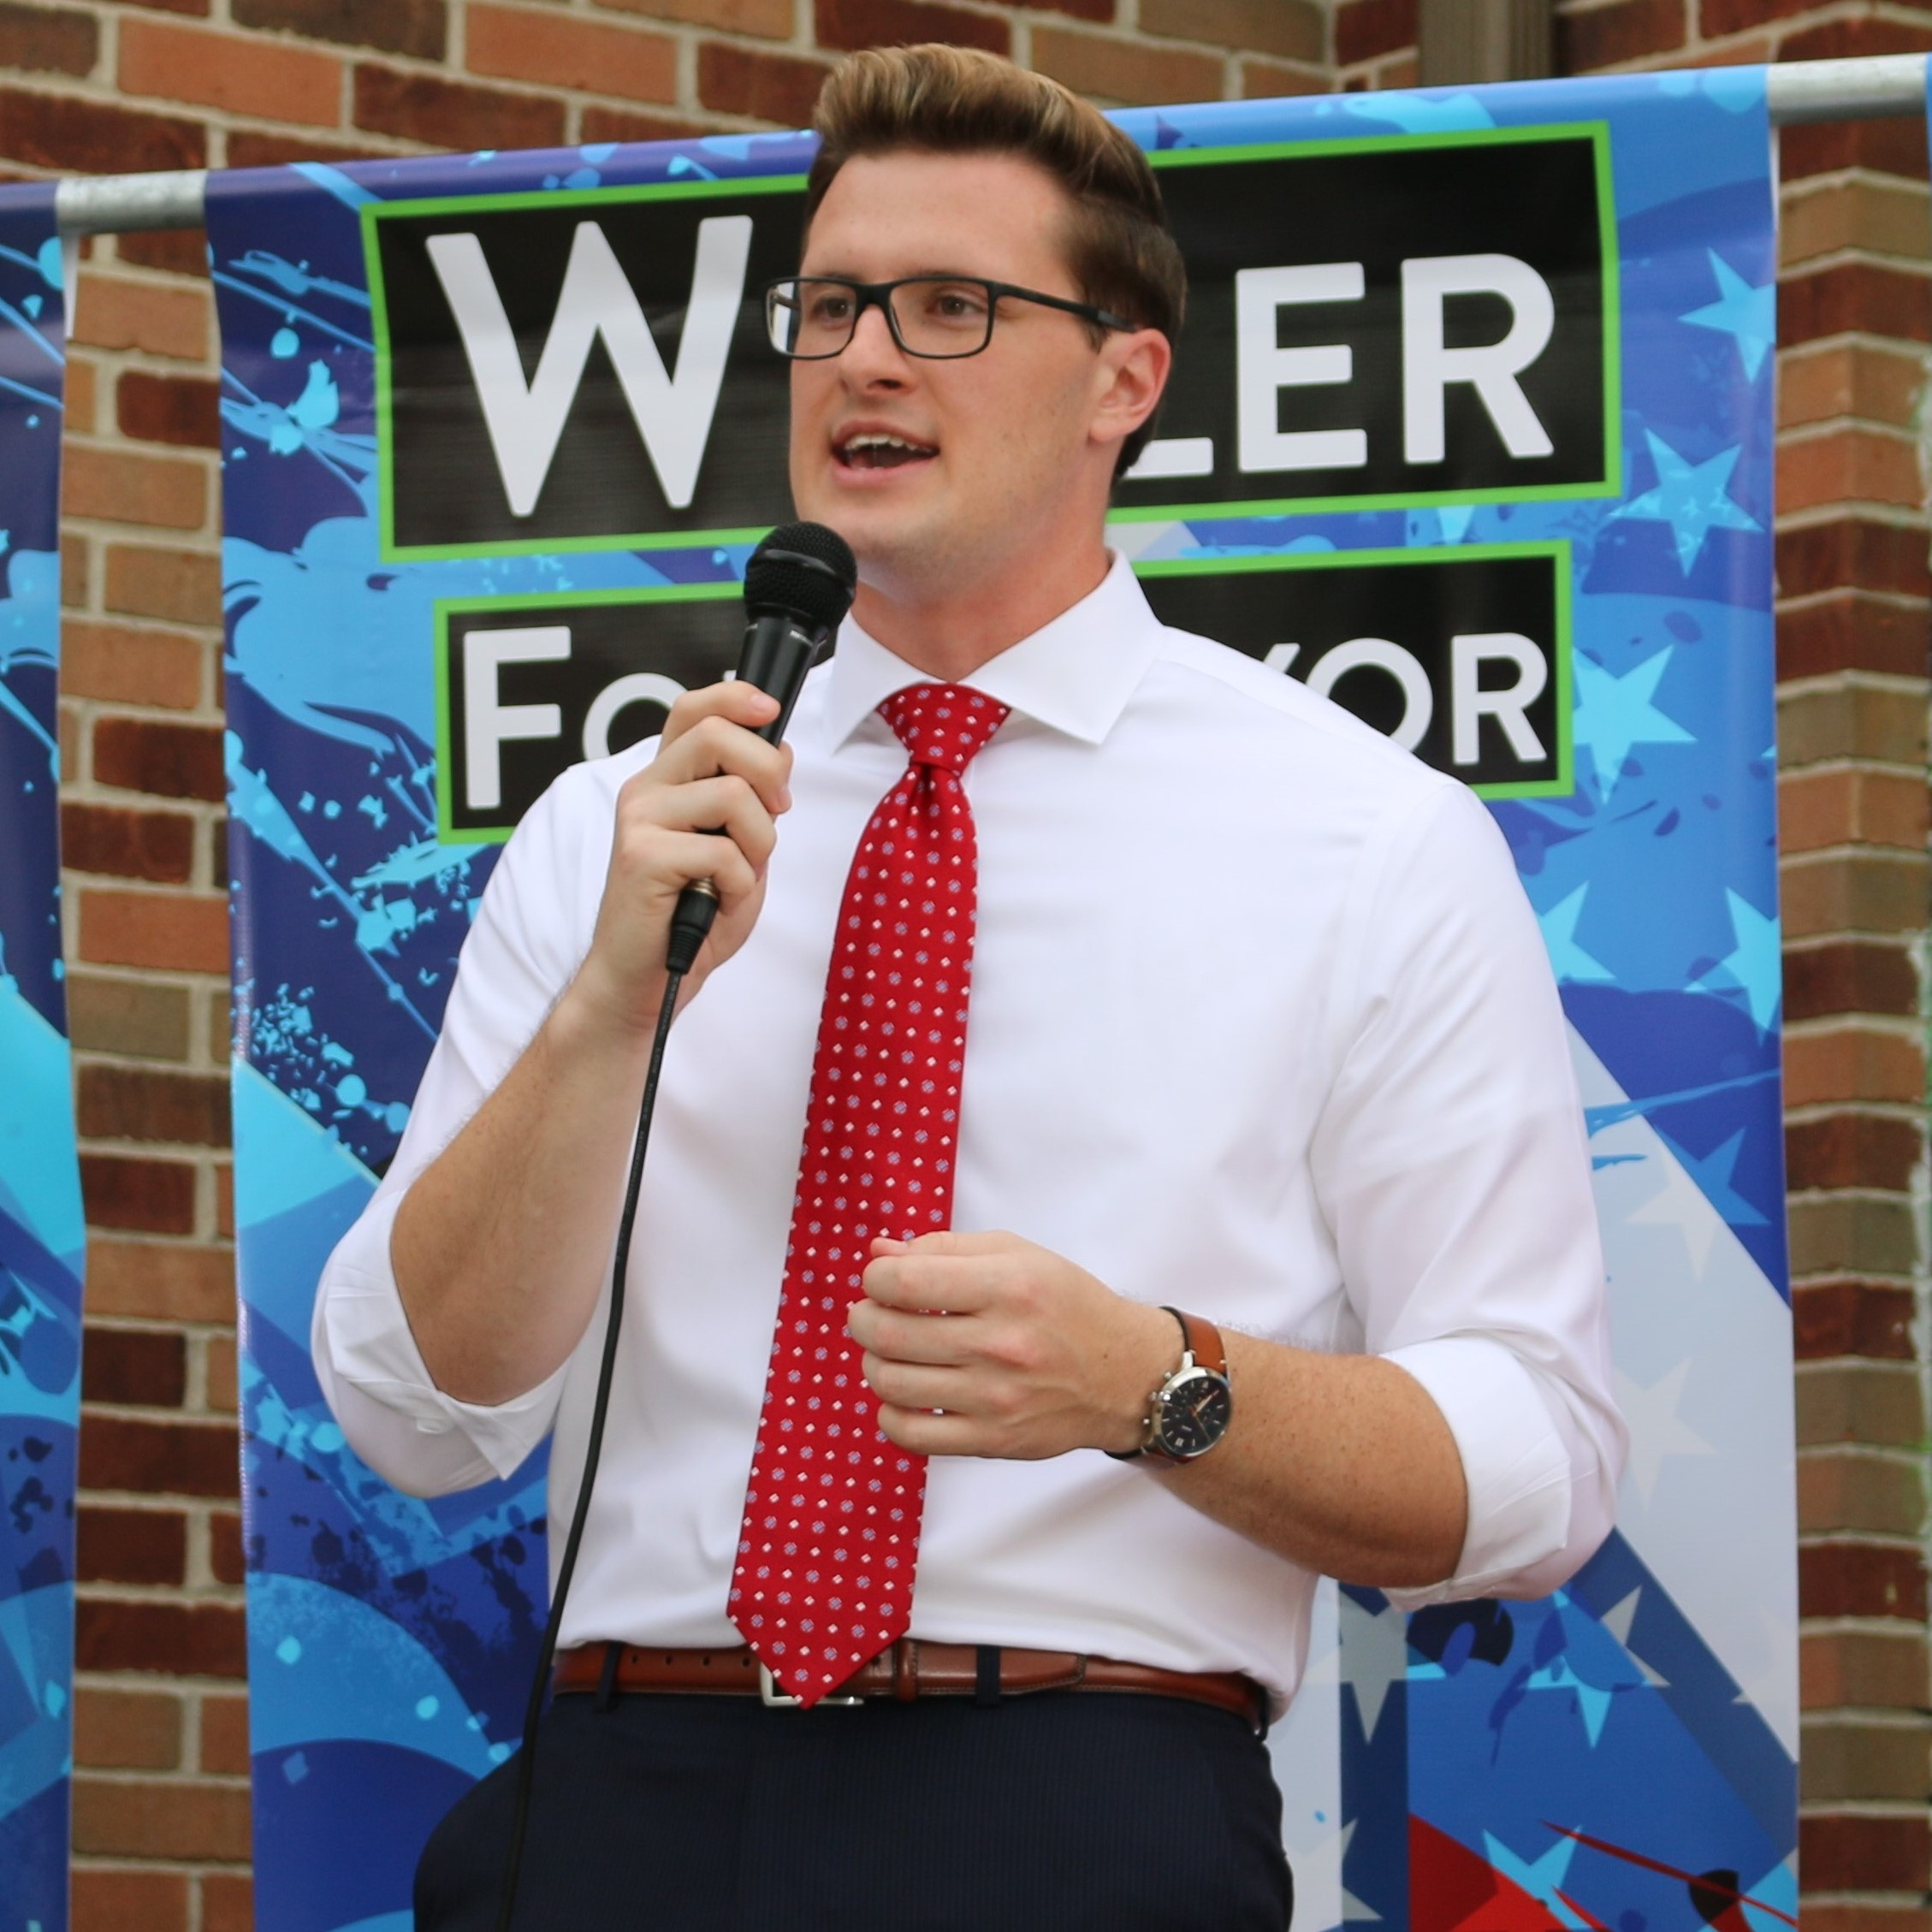 Justin T. Weller - Your Independent candidate for Mayor